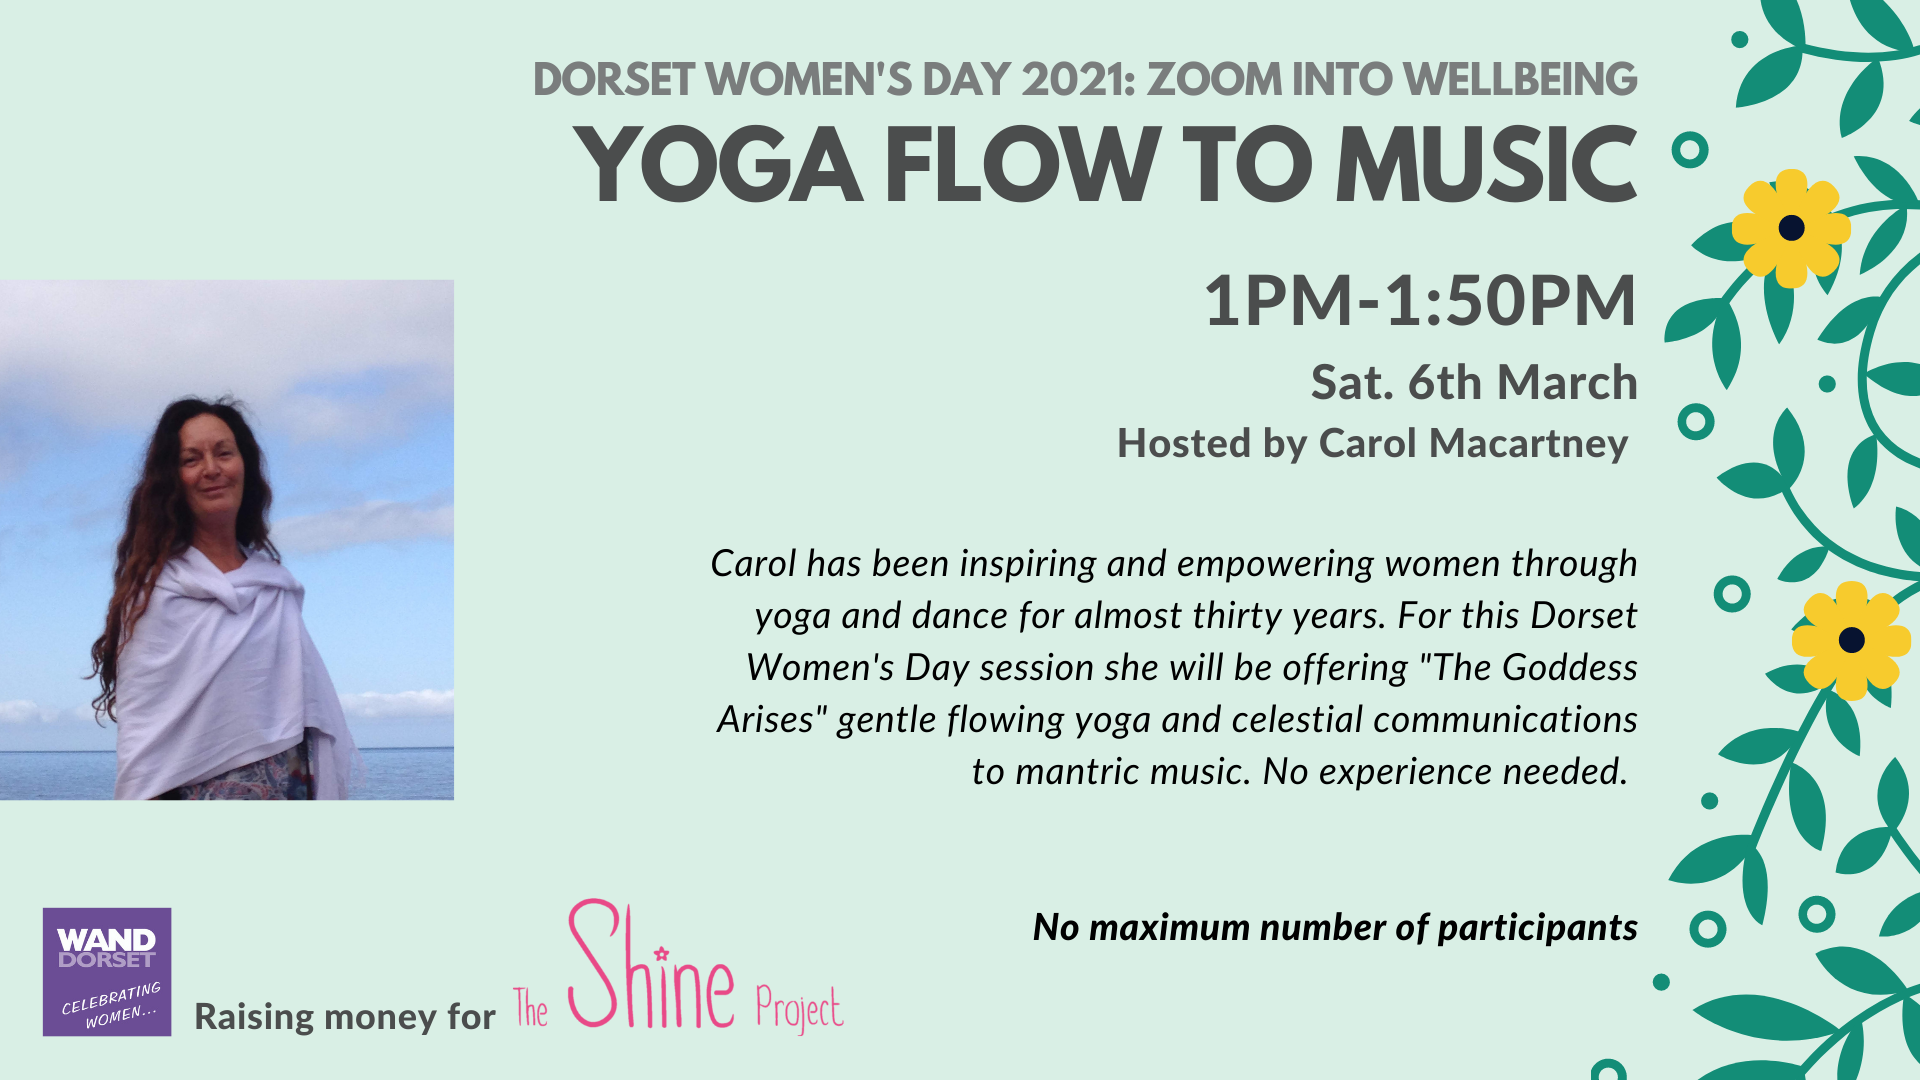 Dorset Women's Day 2021: Yoga Flow to Music